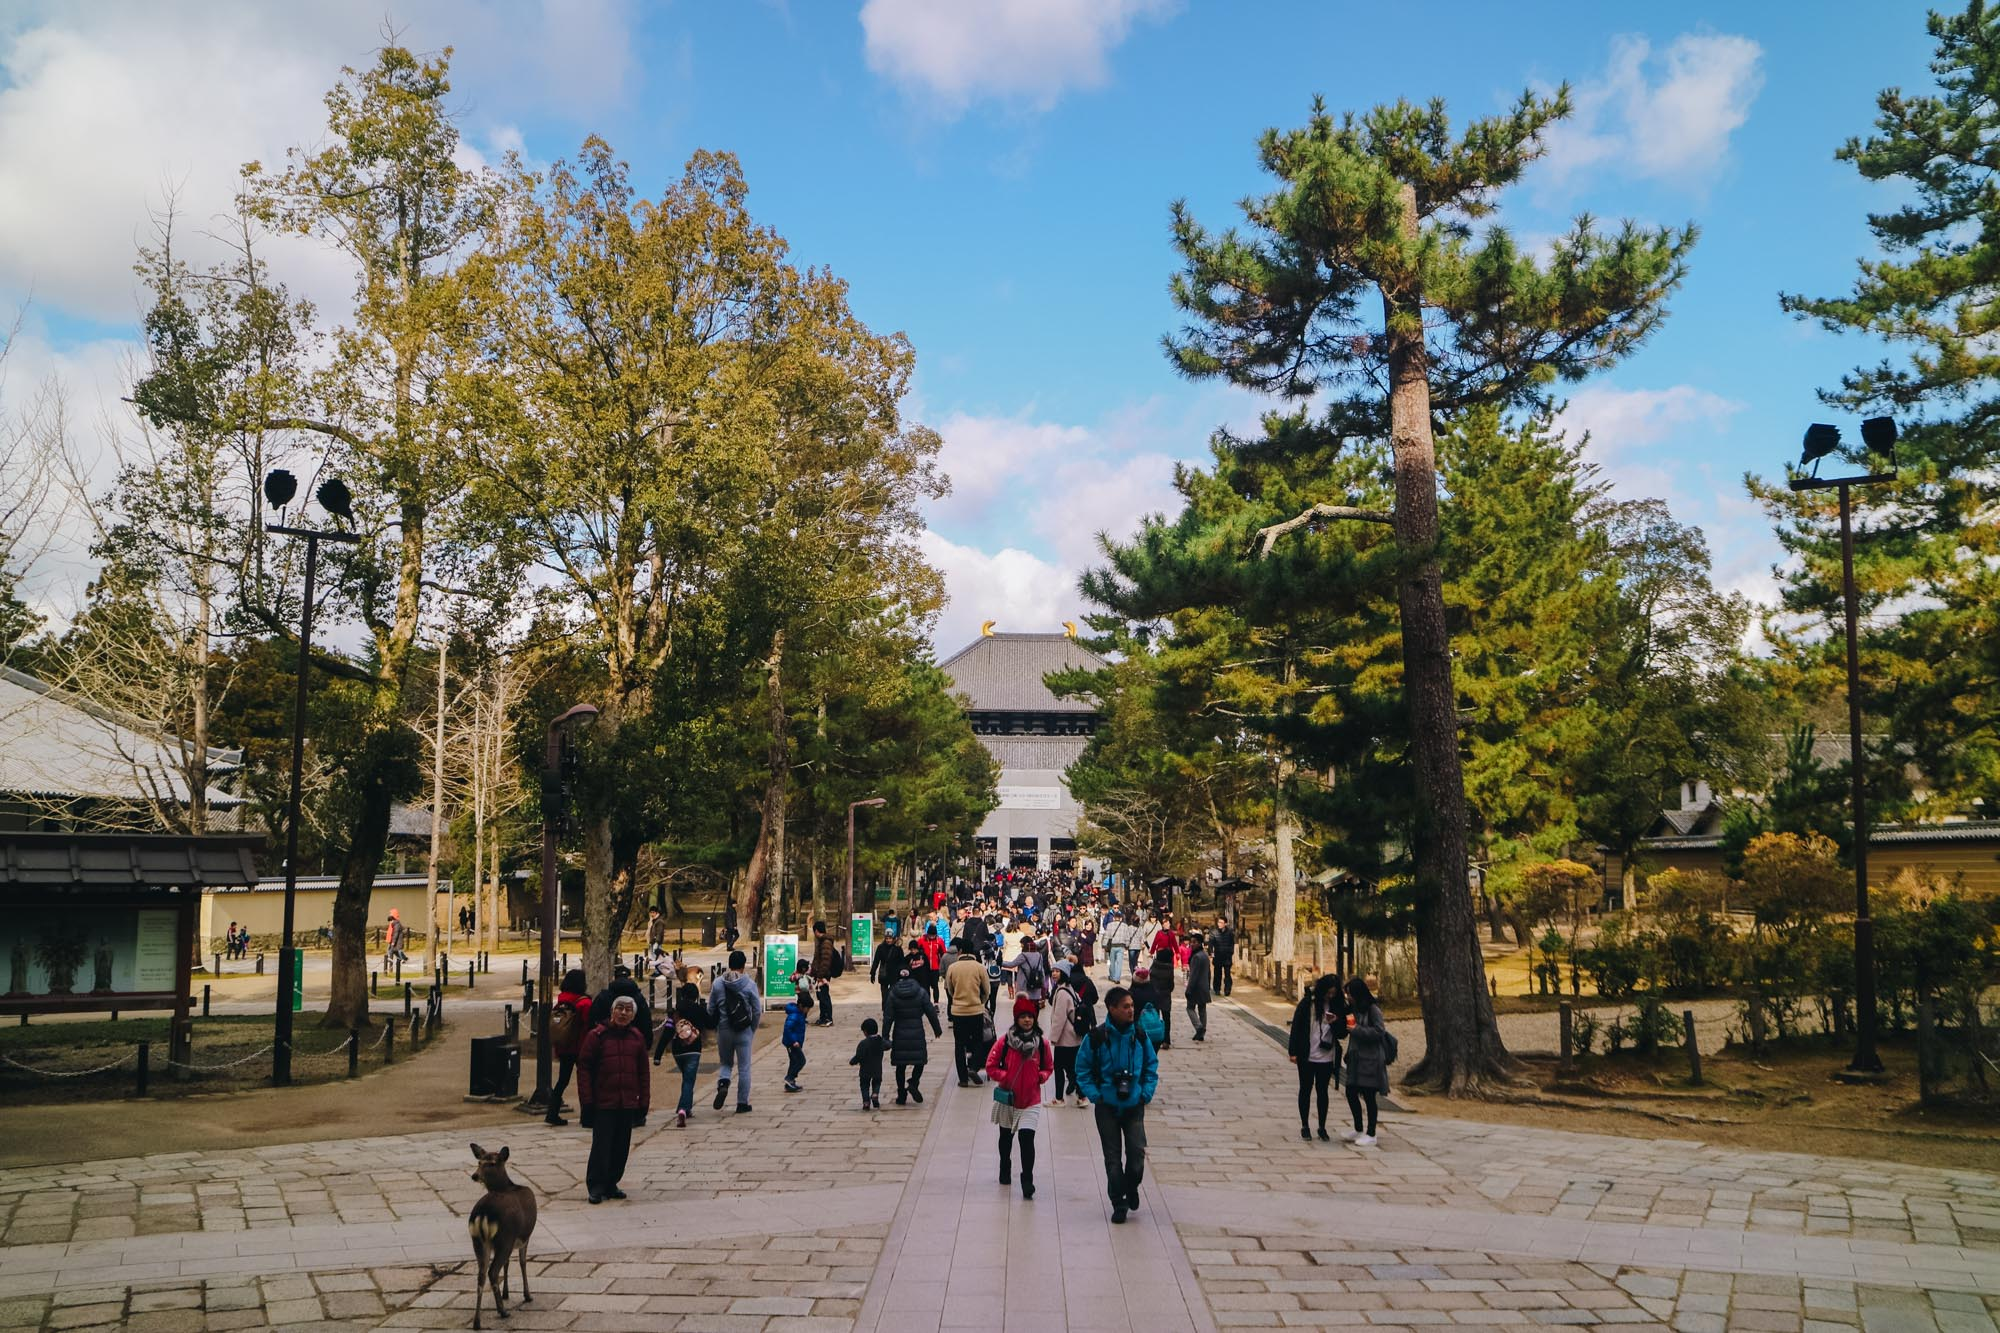 Nara-Park-奈良公園-kyoto-japan-darrenbloggie